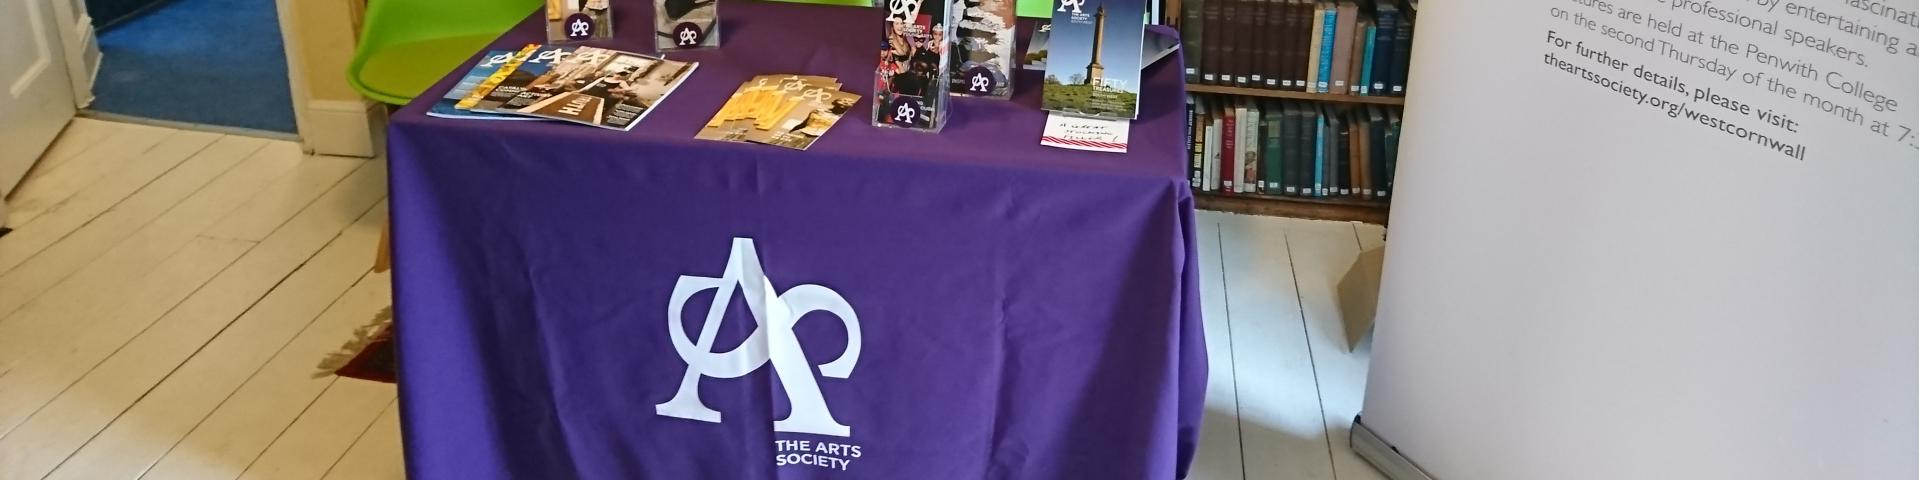 The Arts Society West Cornwall stand